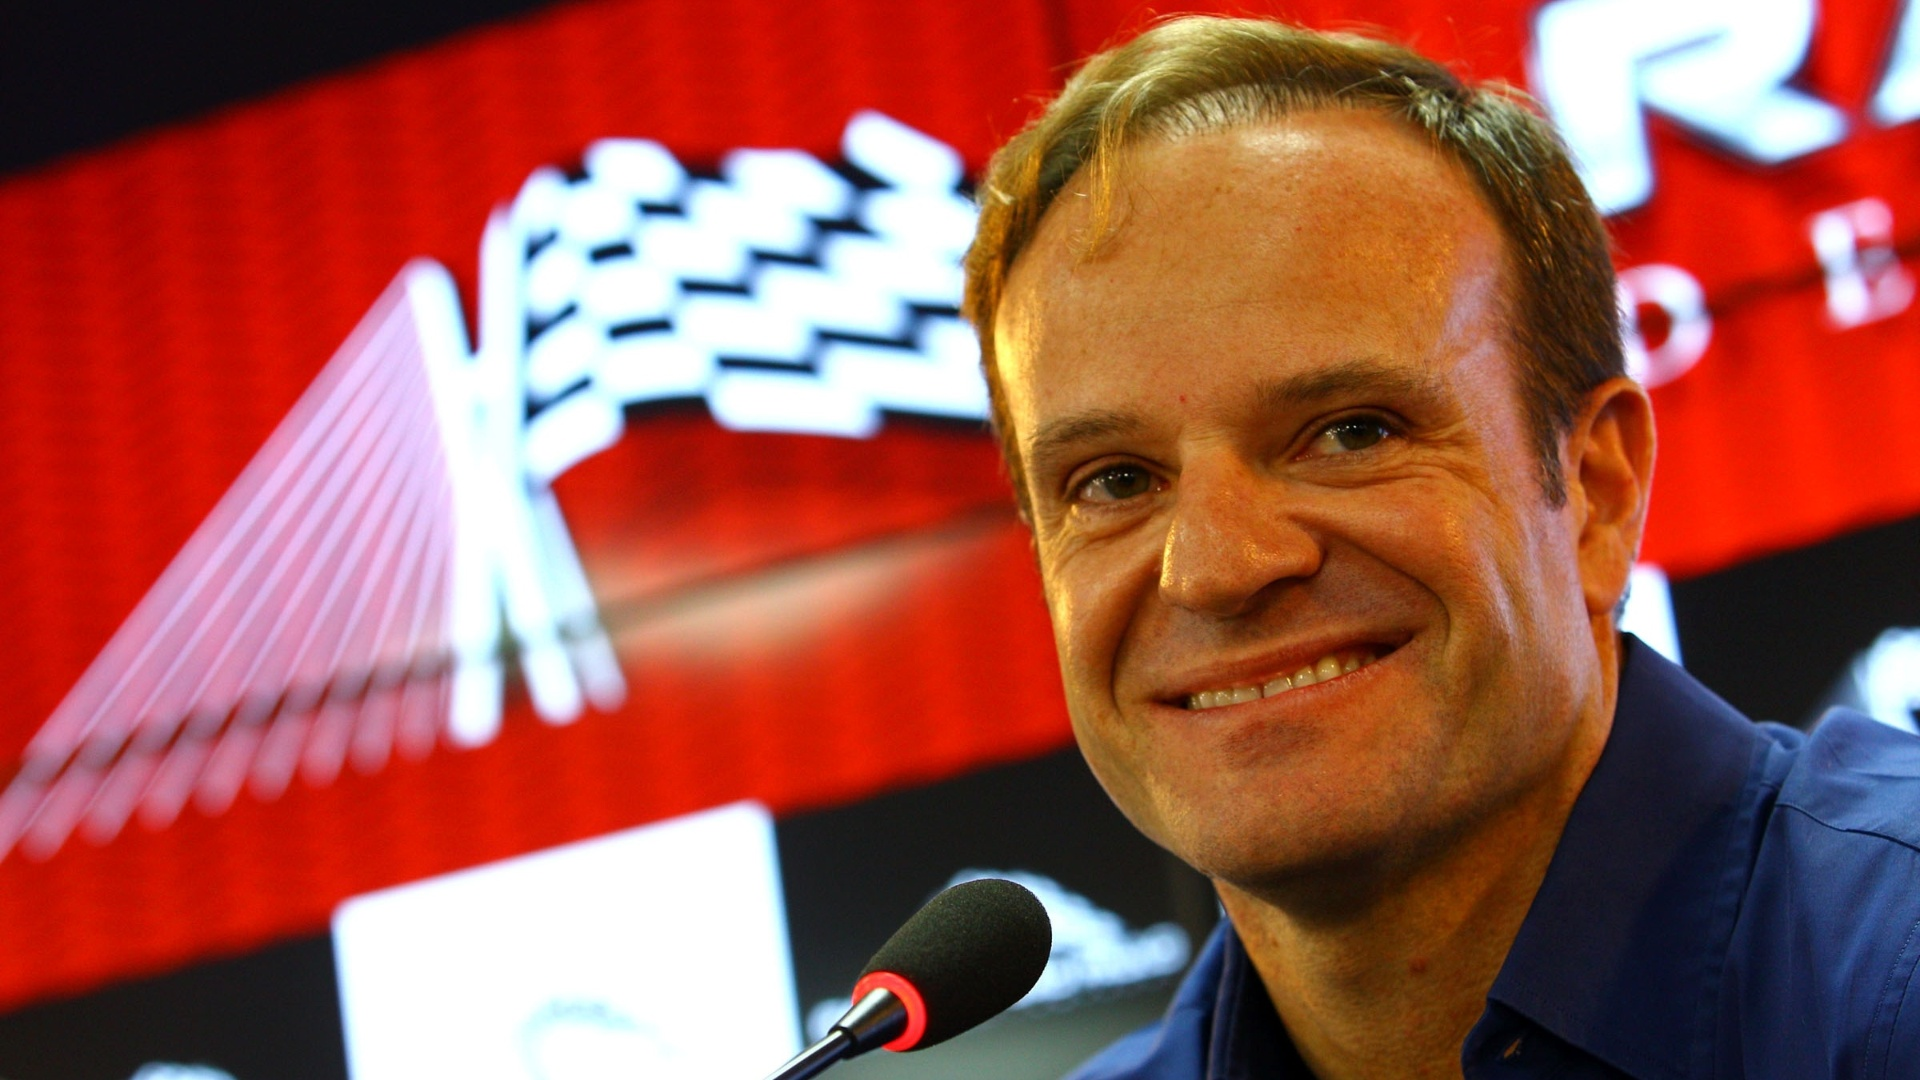 Rubens Barrichello apresenta o Rally de So Paulo em entrevista no CT do Corinthians